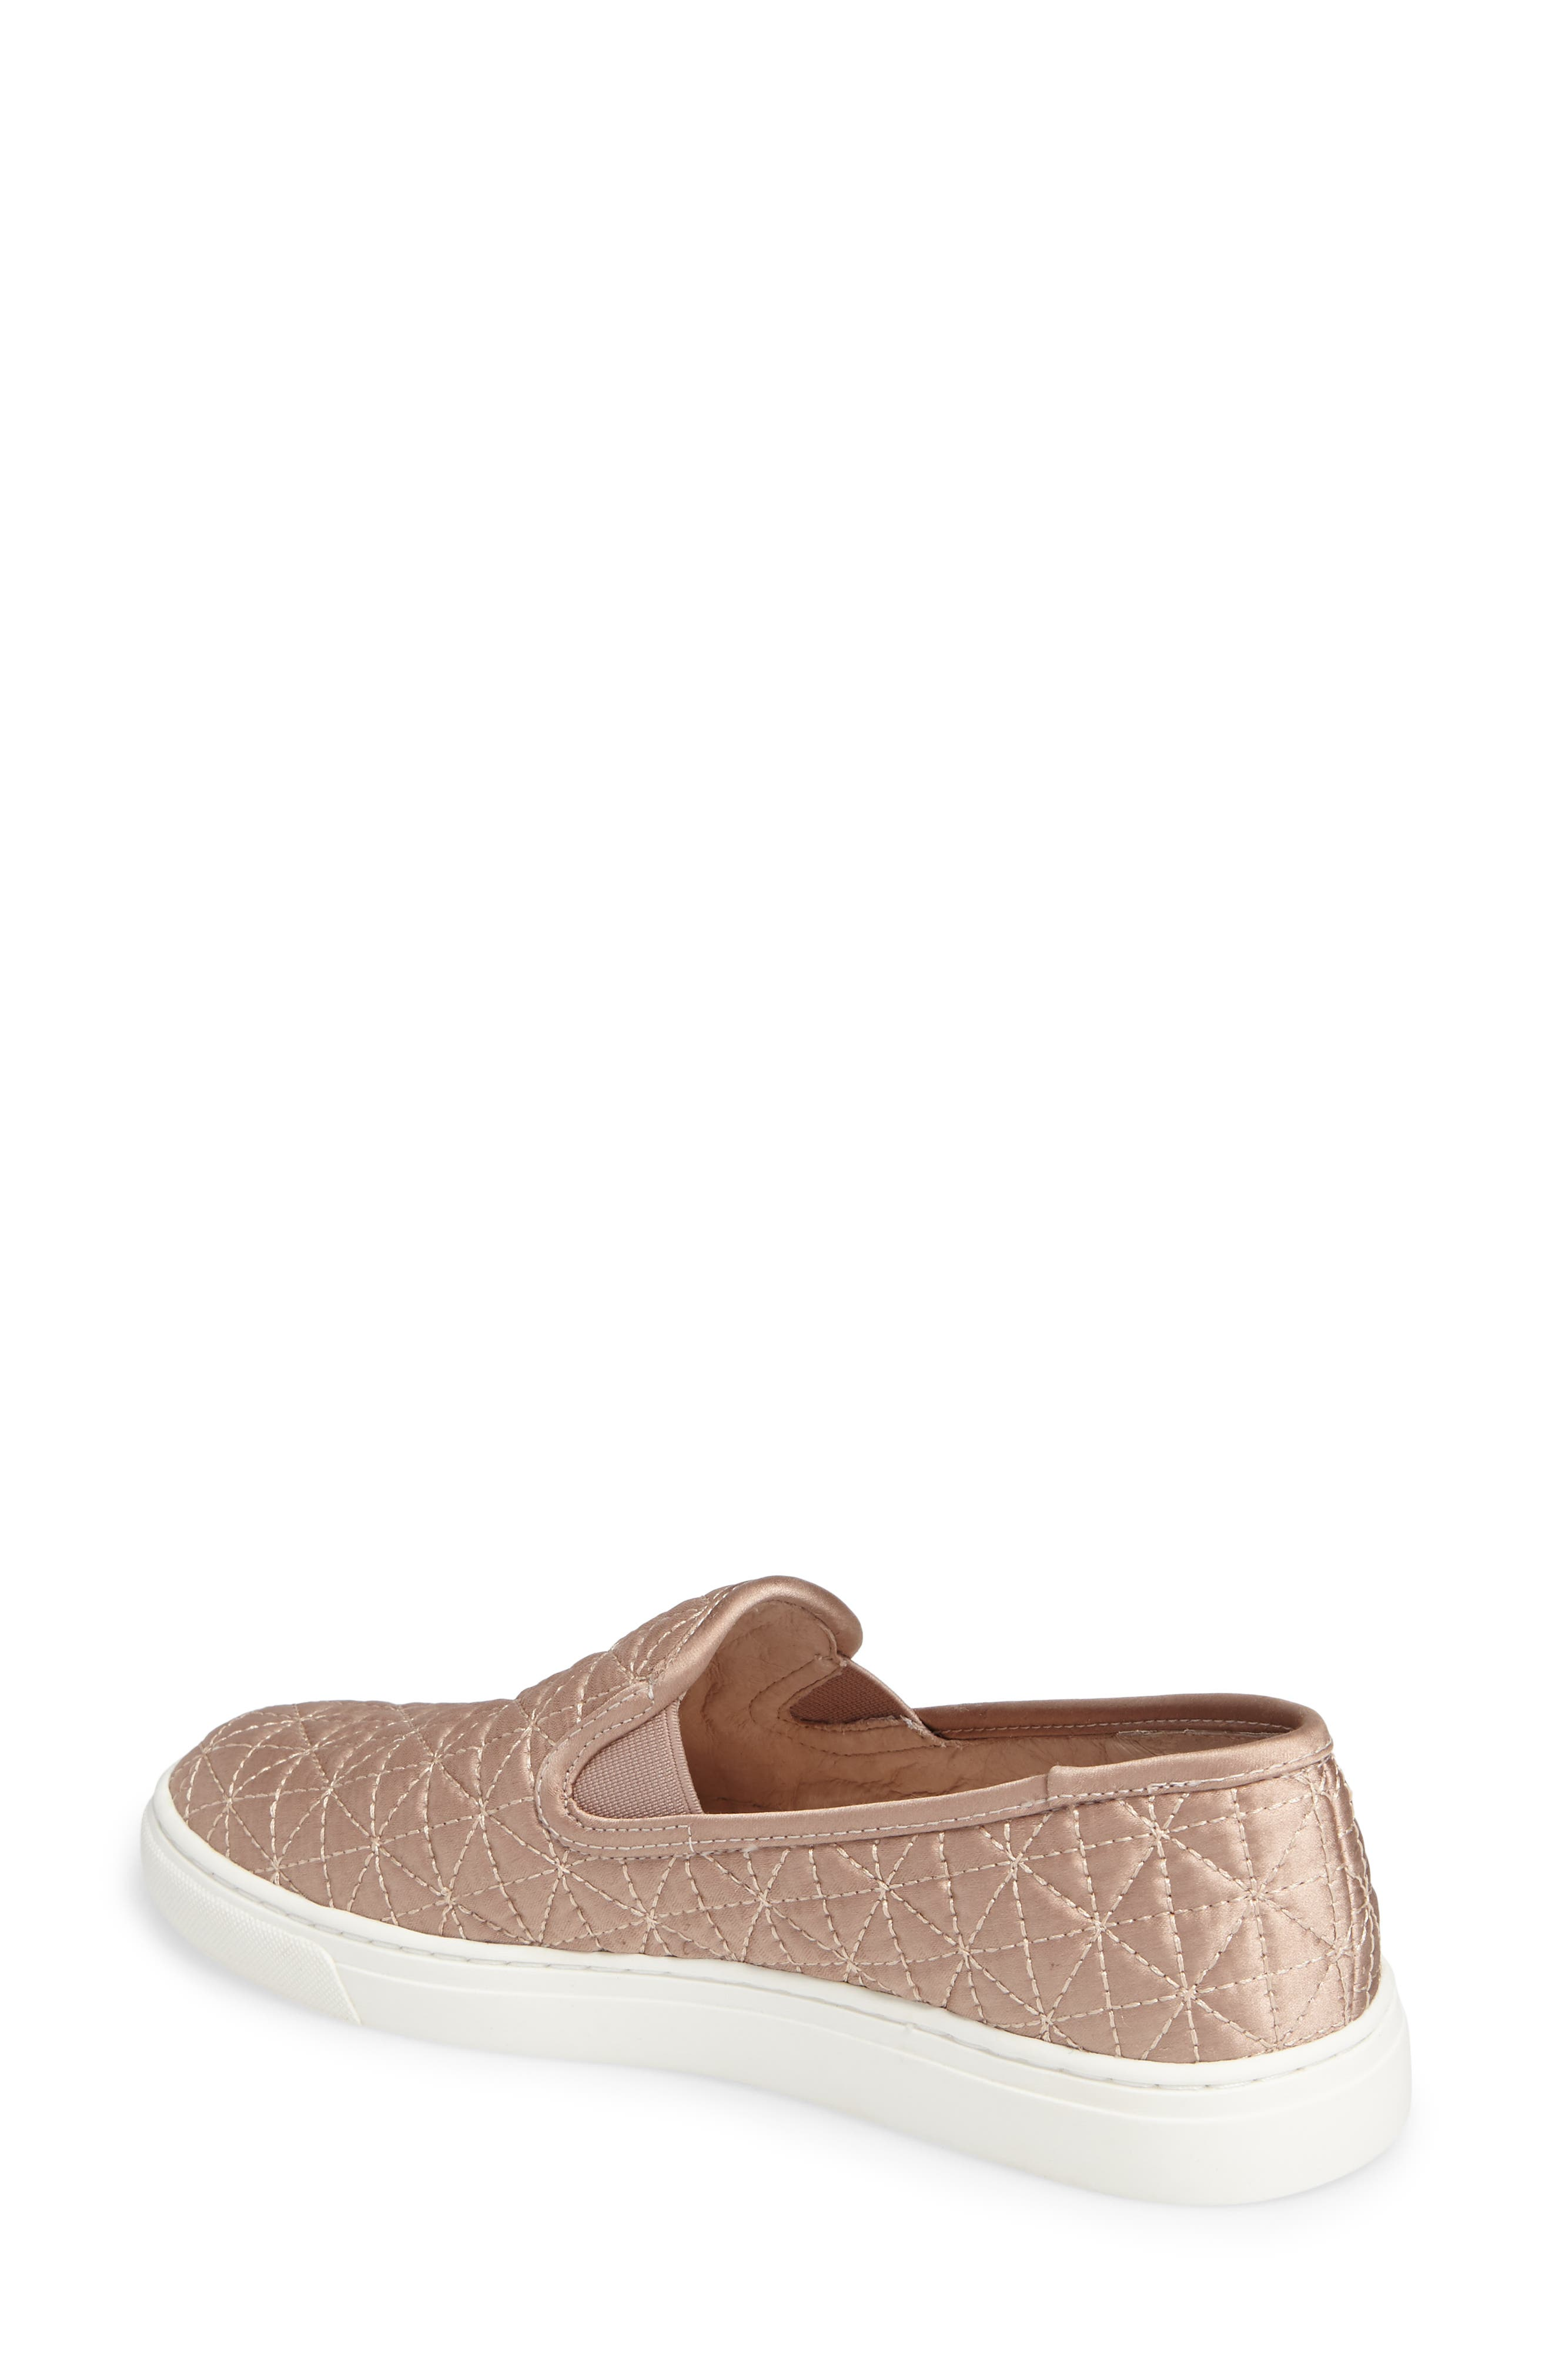 Alternate Image 2  - Vince Camuto Billena Quilted Slip-On Sneaker (Women)